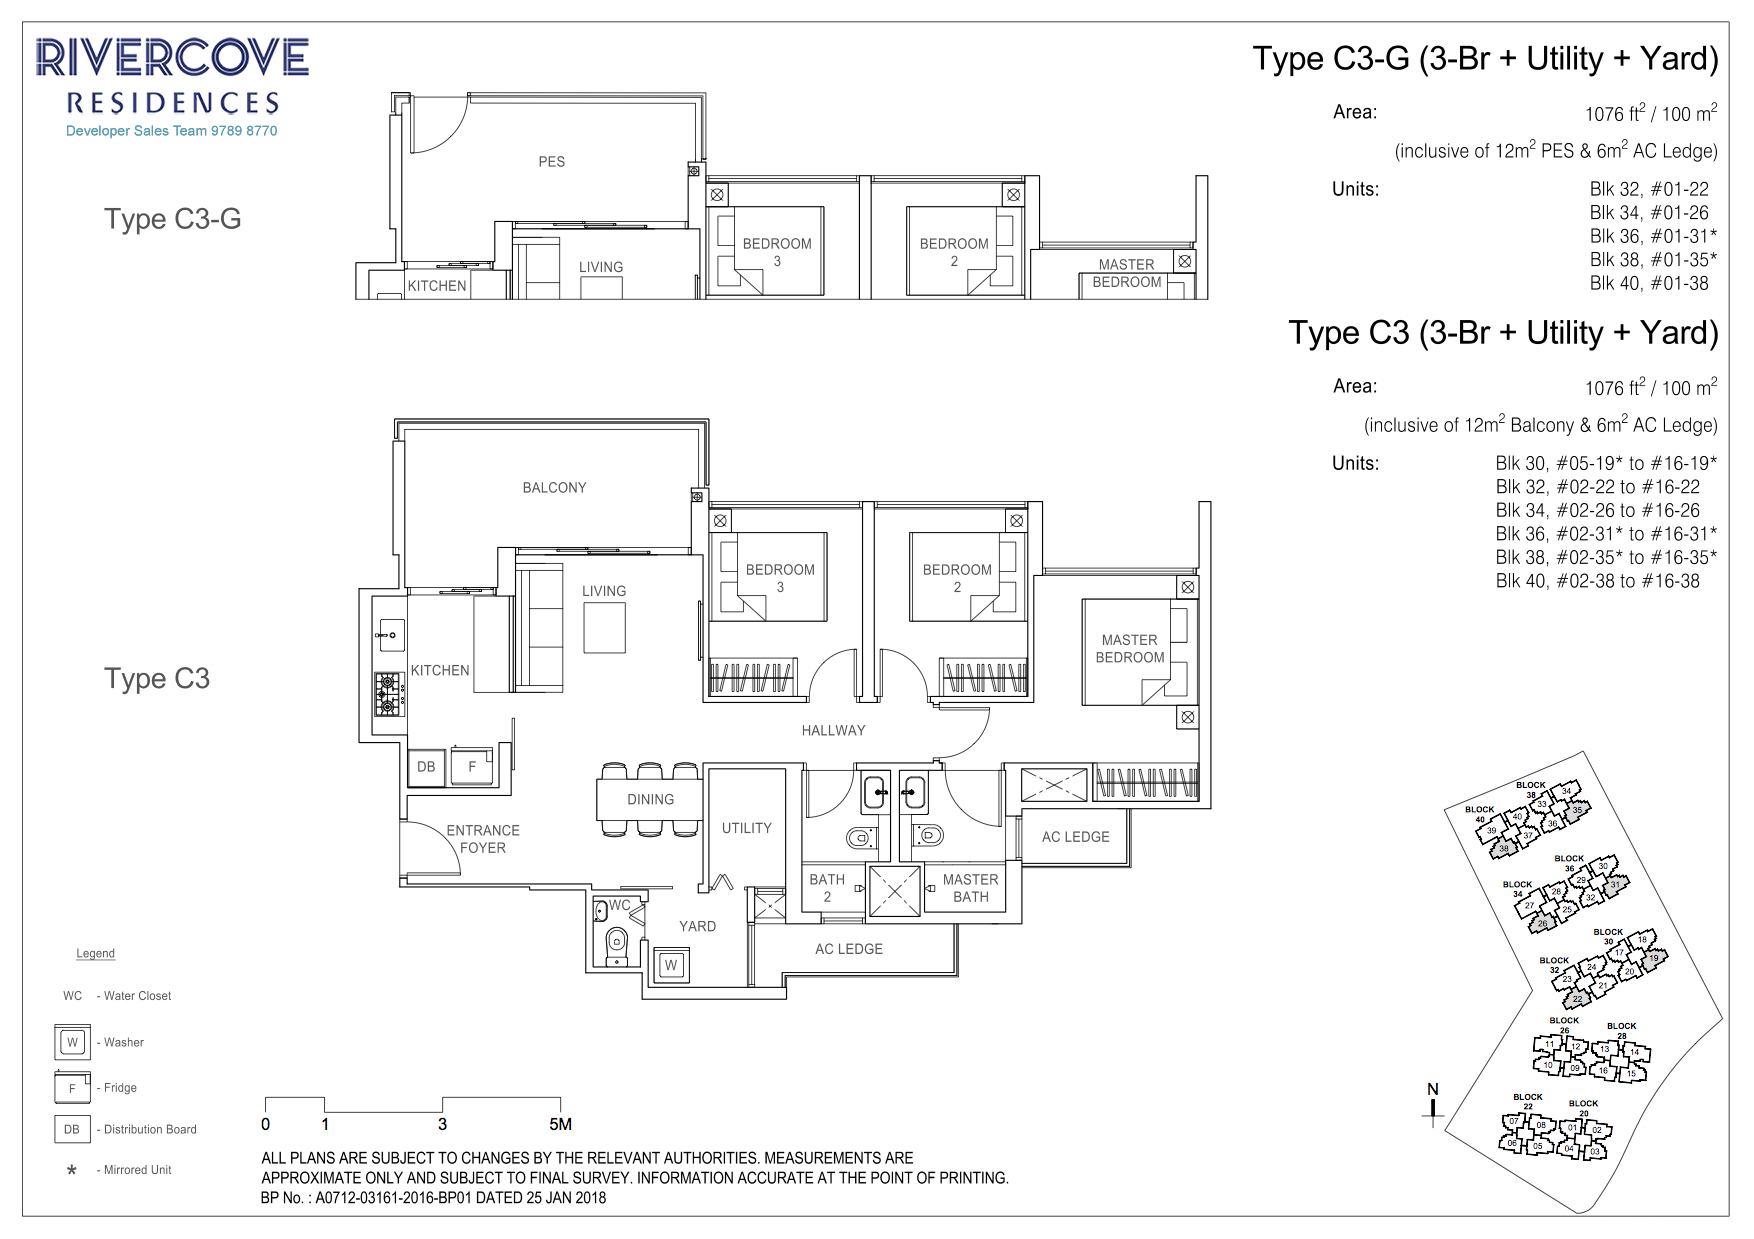 Rivercove Residences Floorplan Type C3